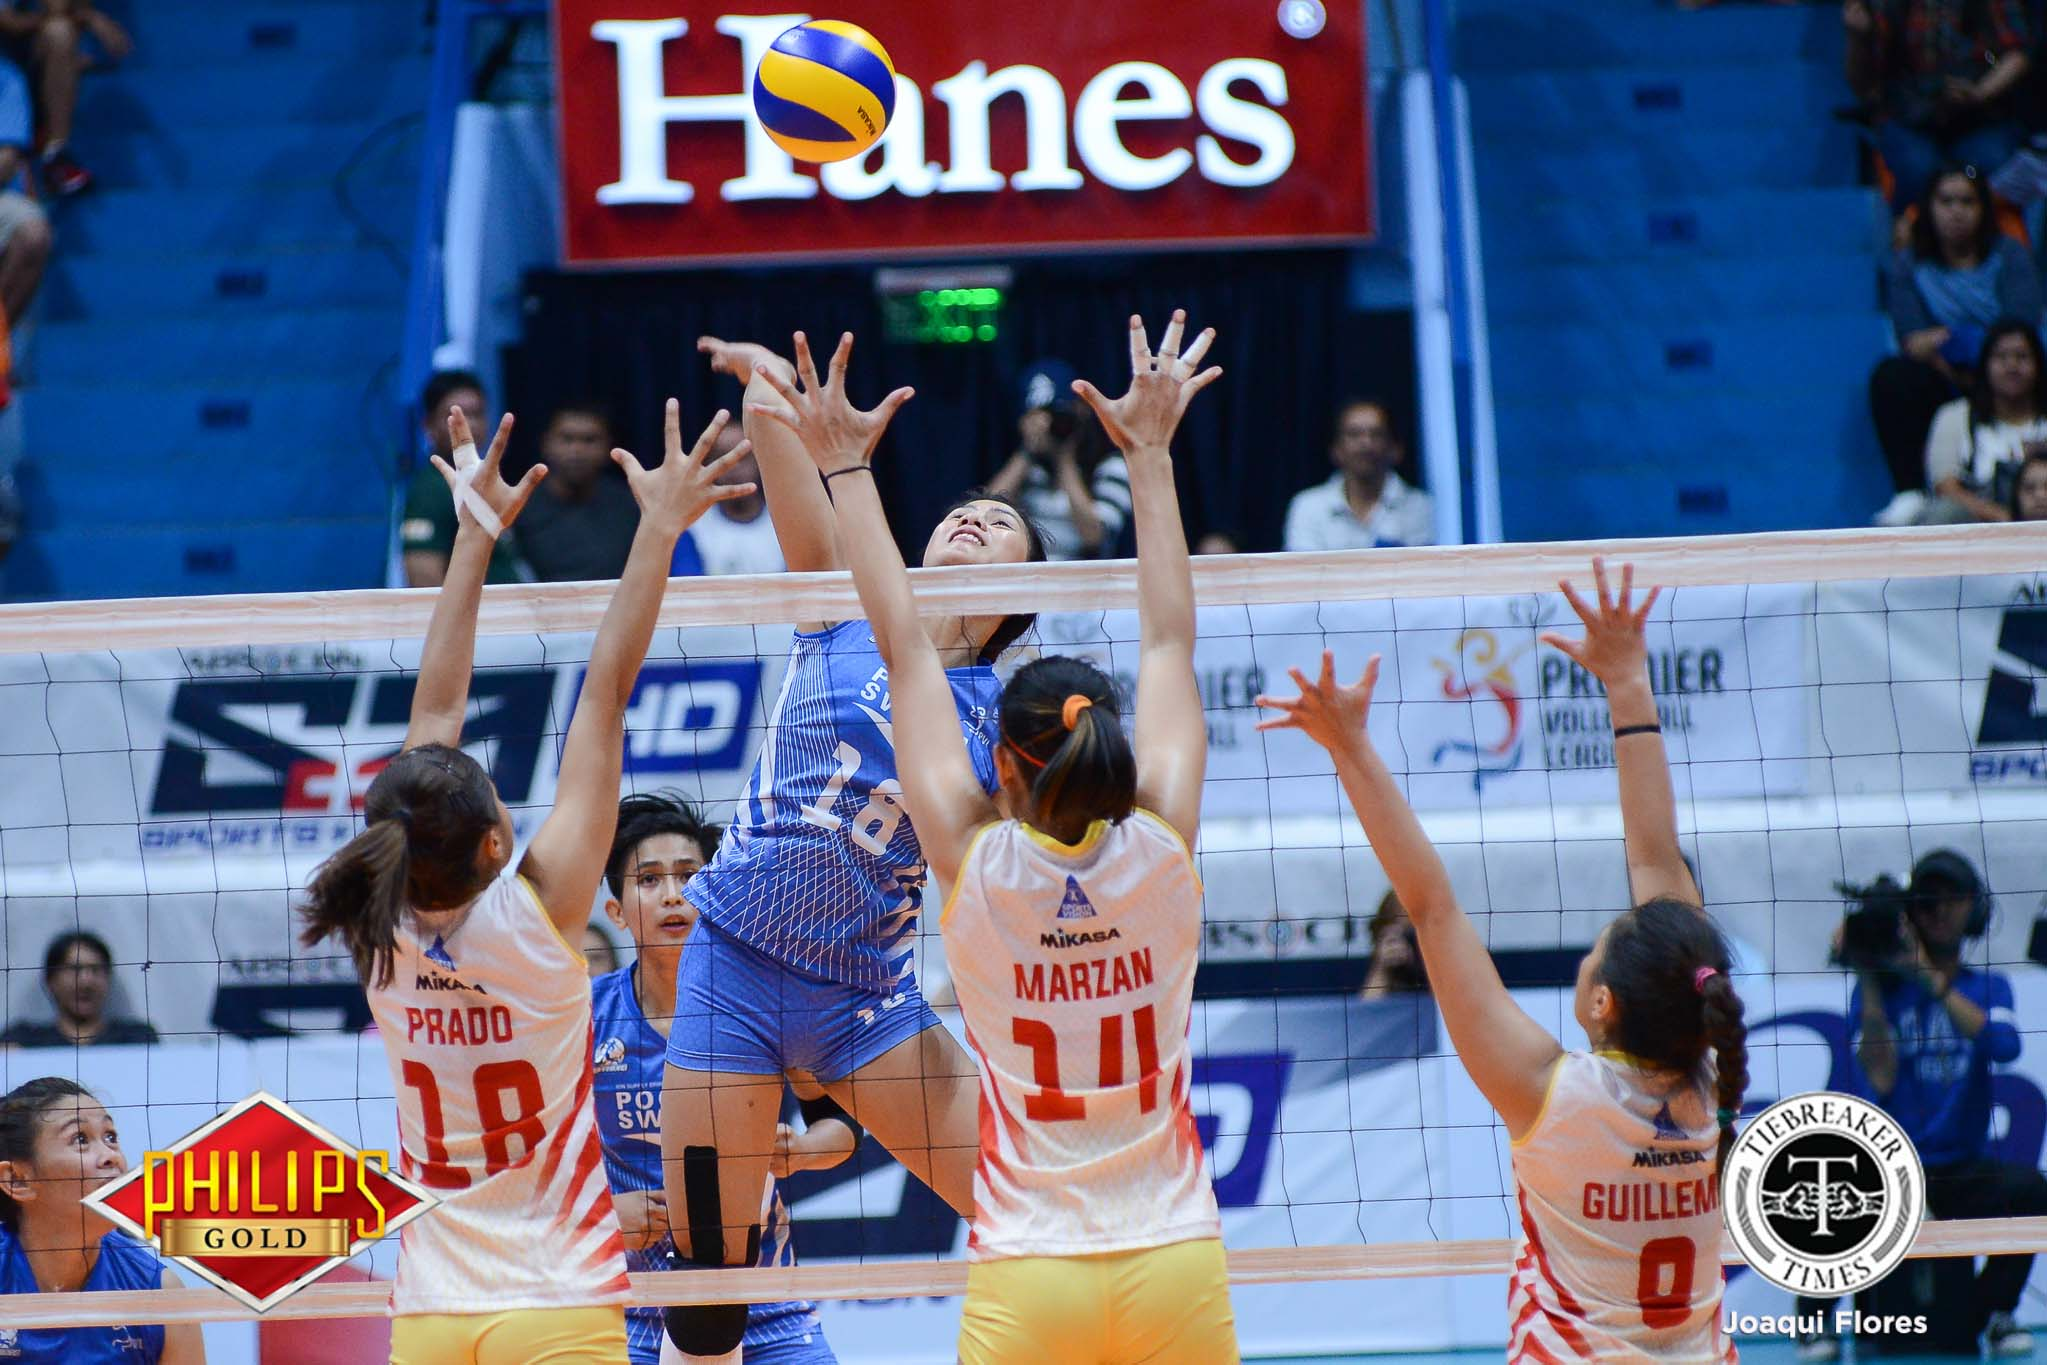 Philippine Sports News - Tiebreaker Times Pocari Sweat dodges Power Smashers upset axe to remain unscathed News PVL Volleyball  Rico De Guzman Regine Arocha Power Smashers Pocari Sweat Lady Warriors Nes Pamilar Myla Pablo Melissa Gohing Mary Pacres Jeanette Panaga Gyzelle Sy 2017 PVL Women's Open Conference 2017 PVL Season